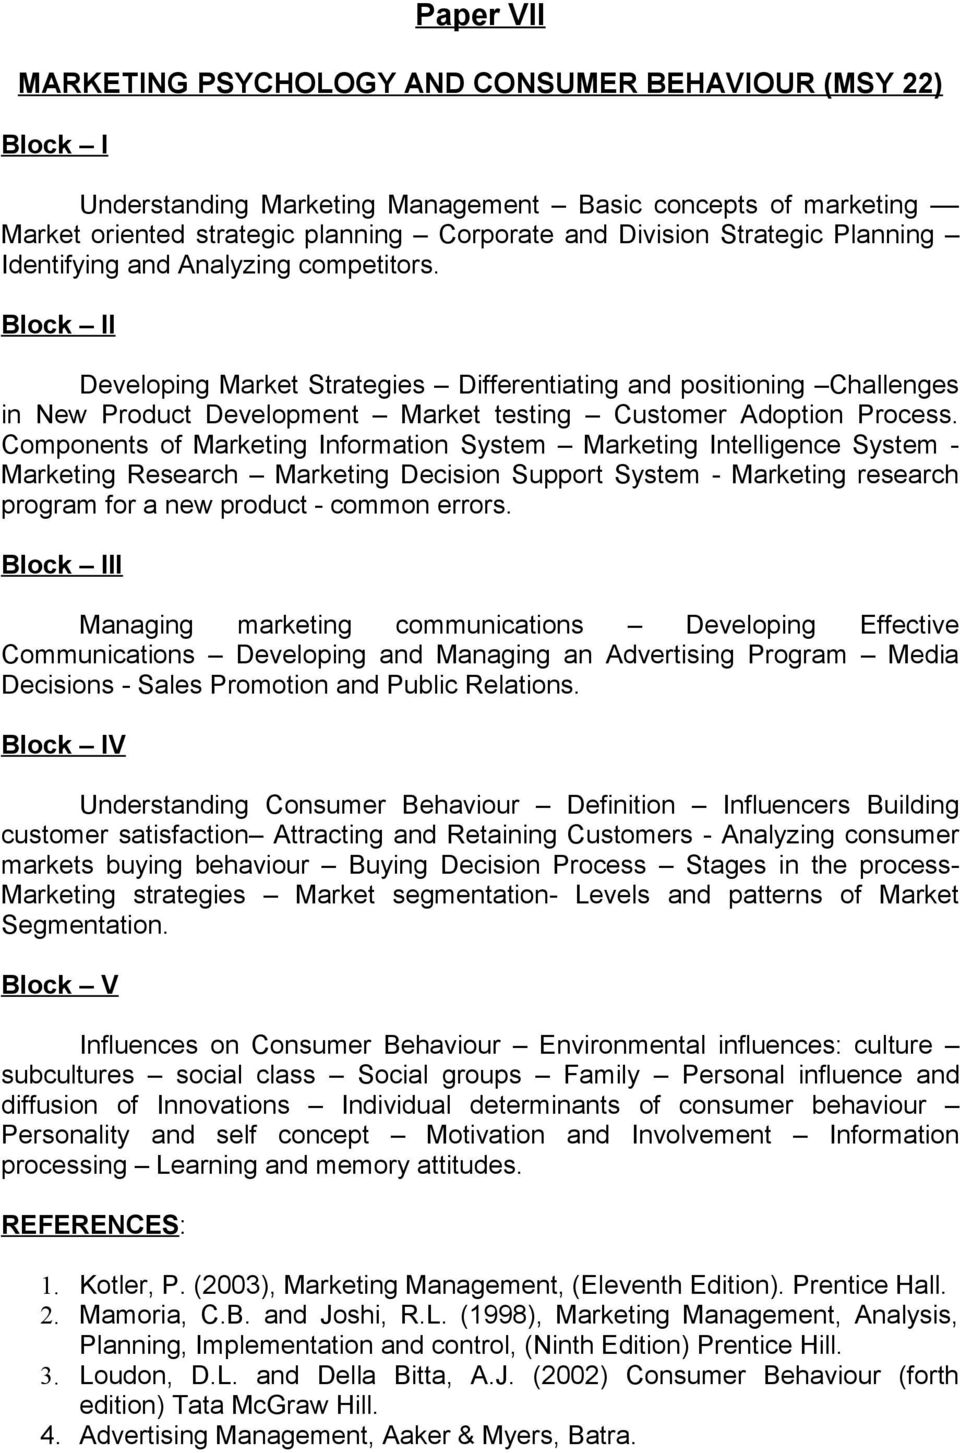 m sc psychology syllabus pdf block ii developing market strategies differentiating and positioning challenges in new product development market testing customer